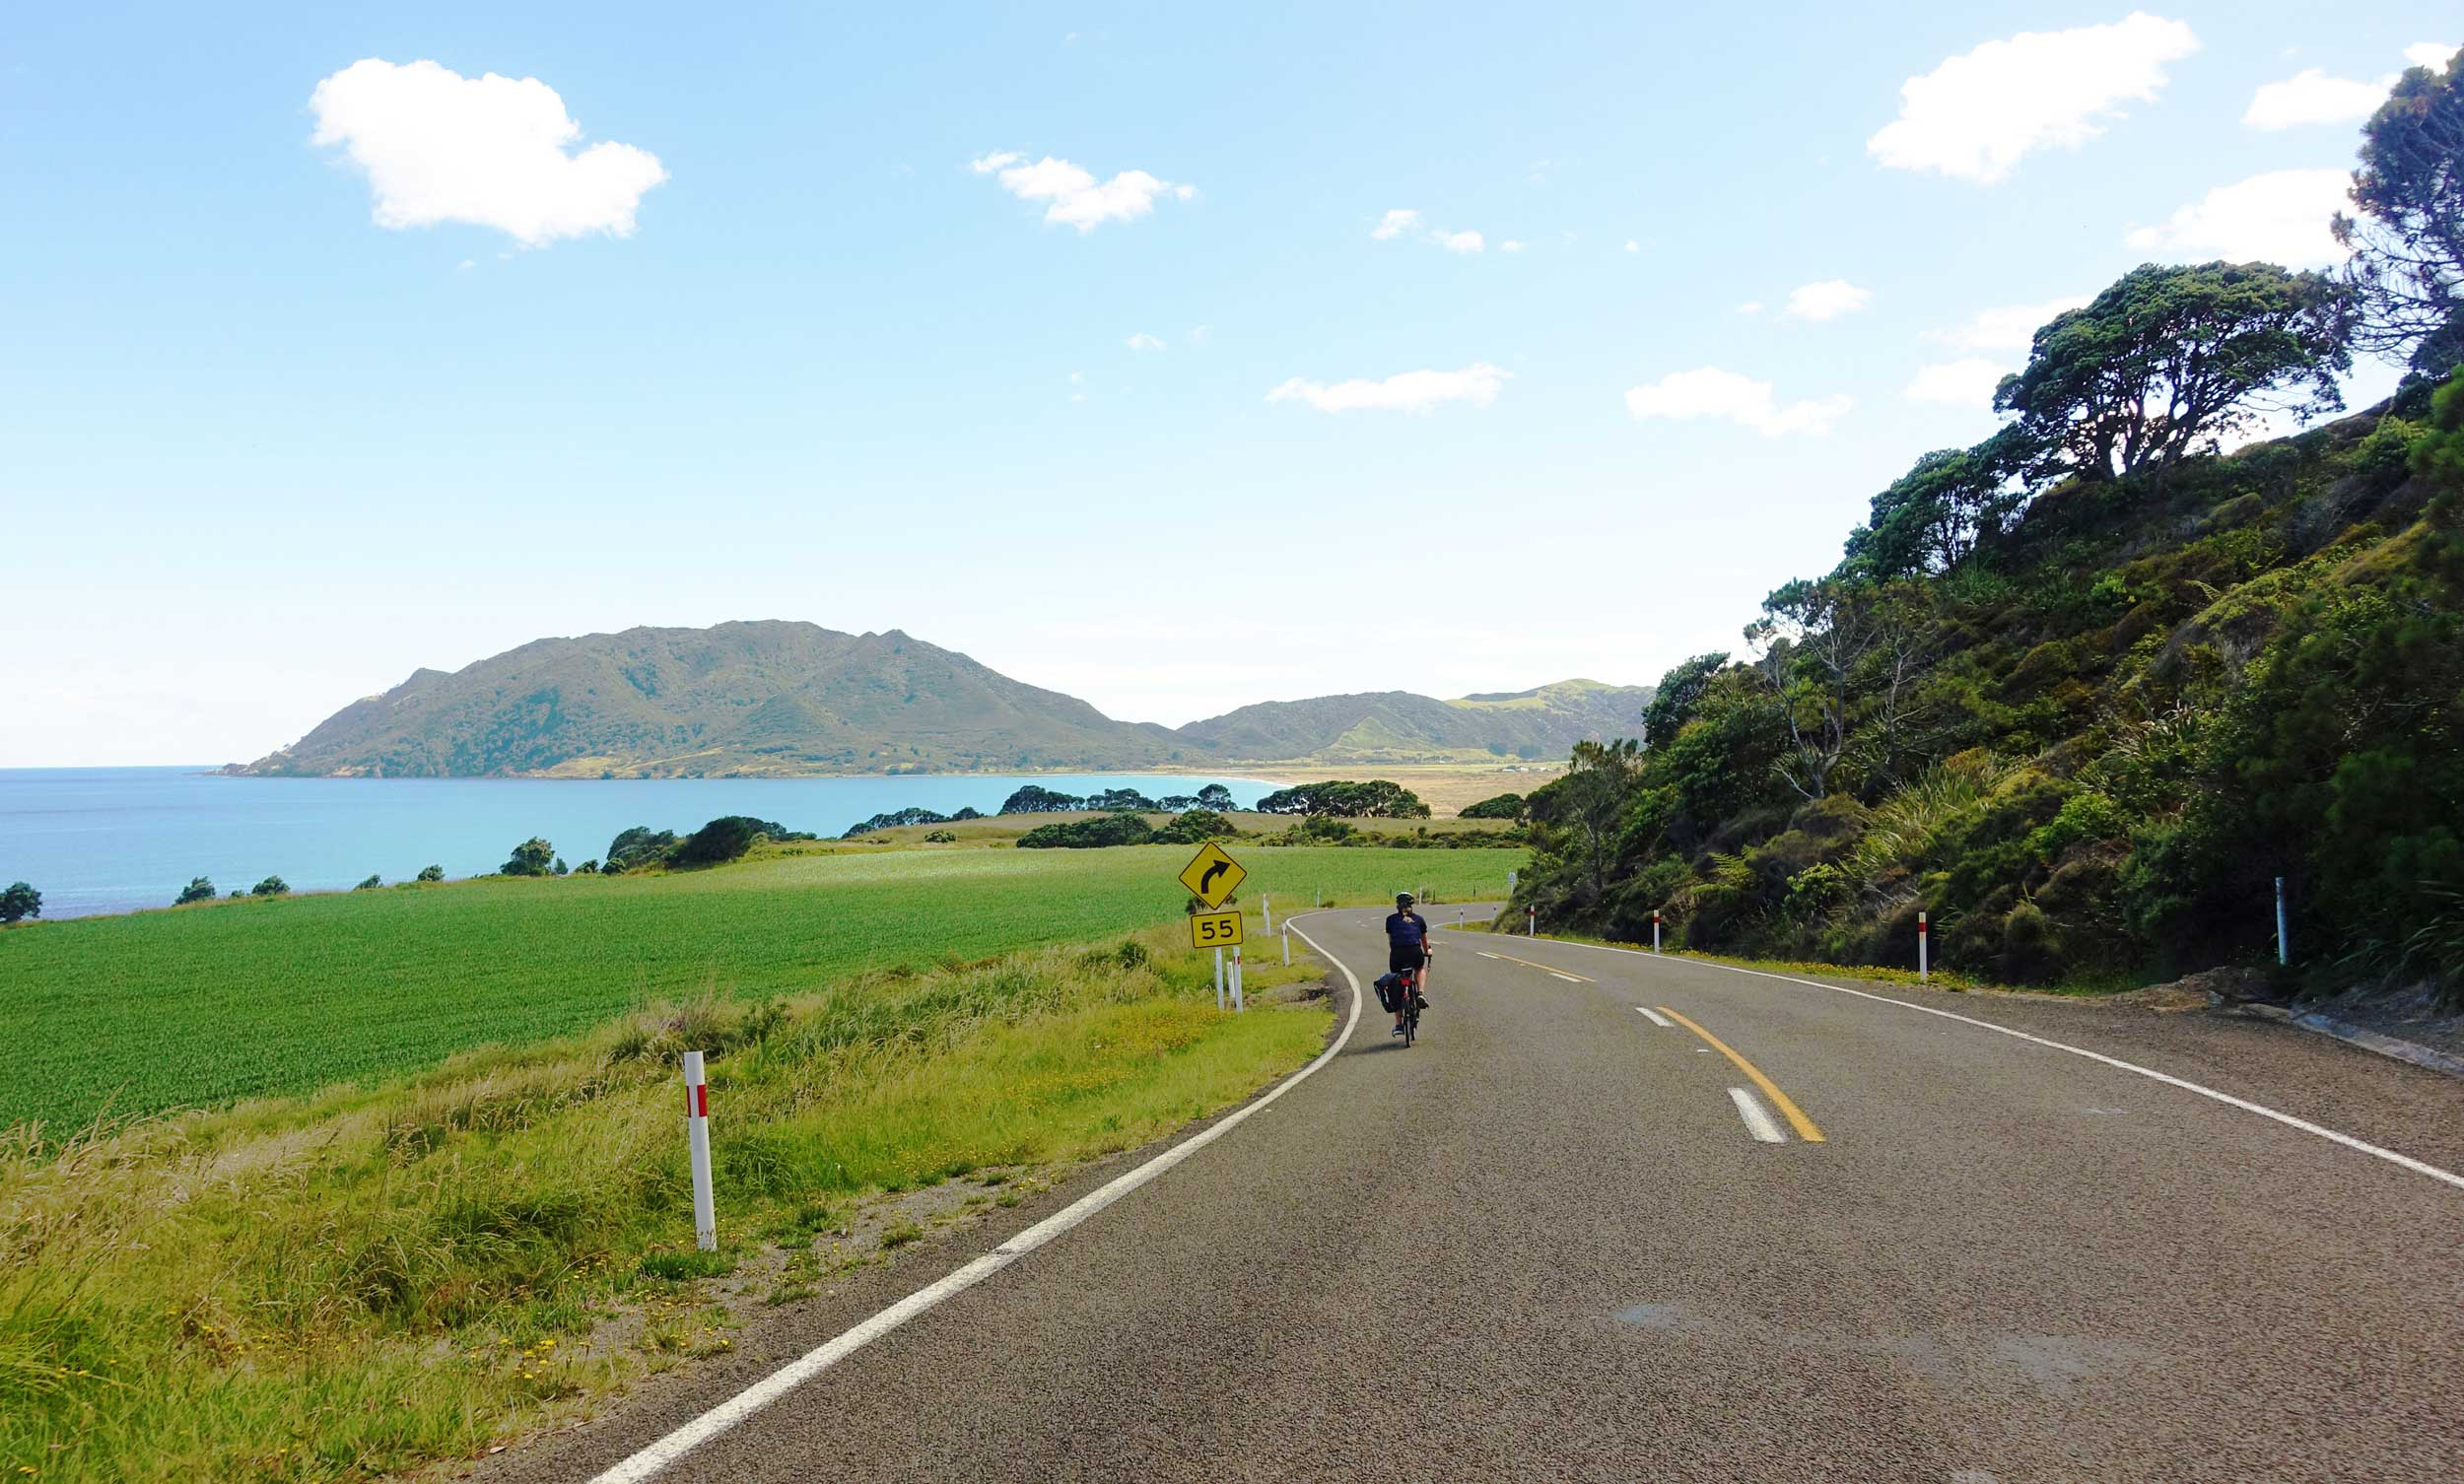 A lone cyclist on a highway with the sea and mountains in the distance, New Zealand